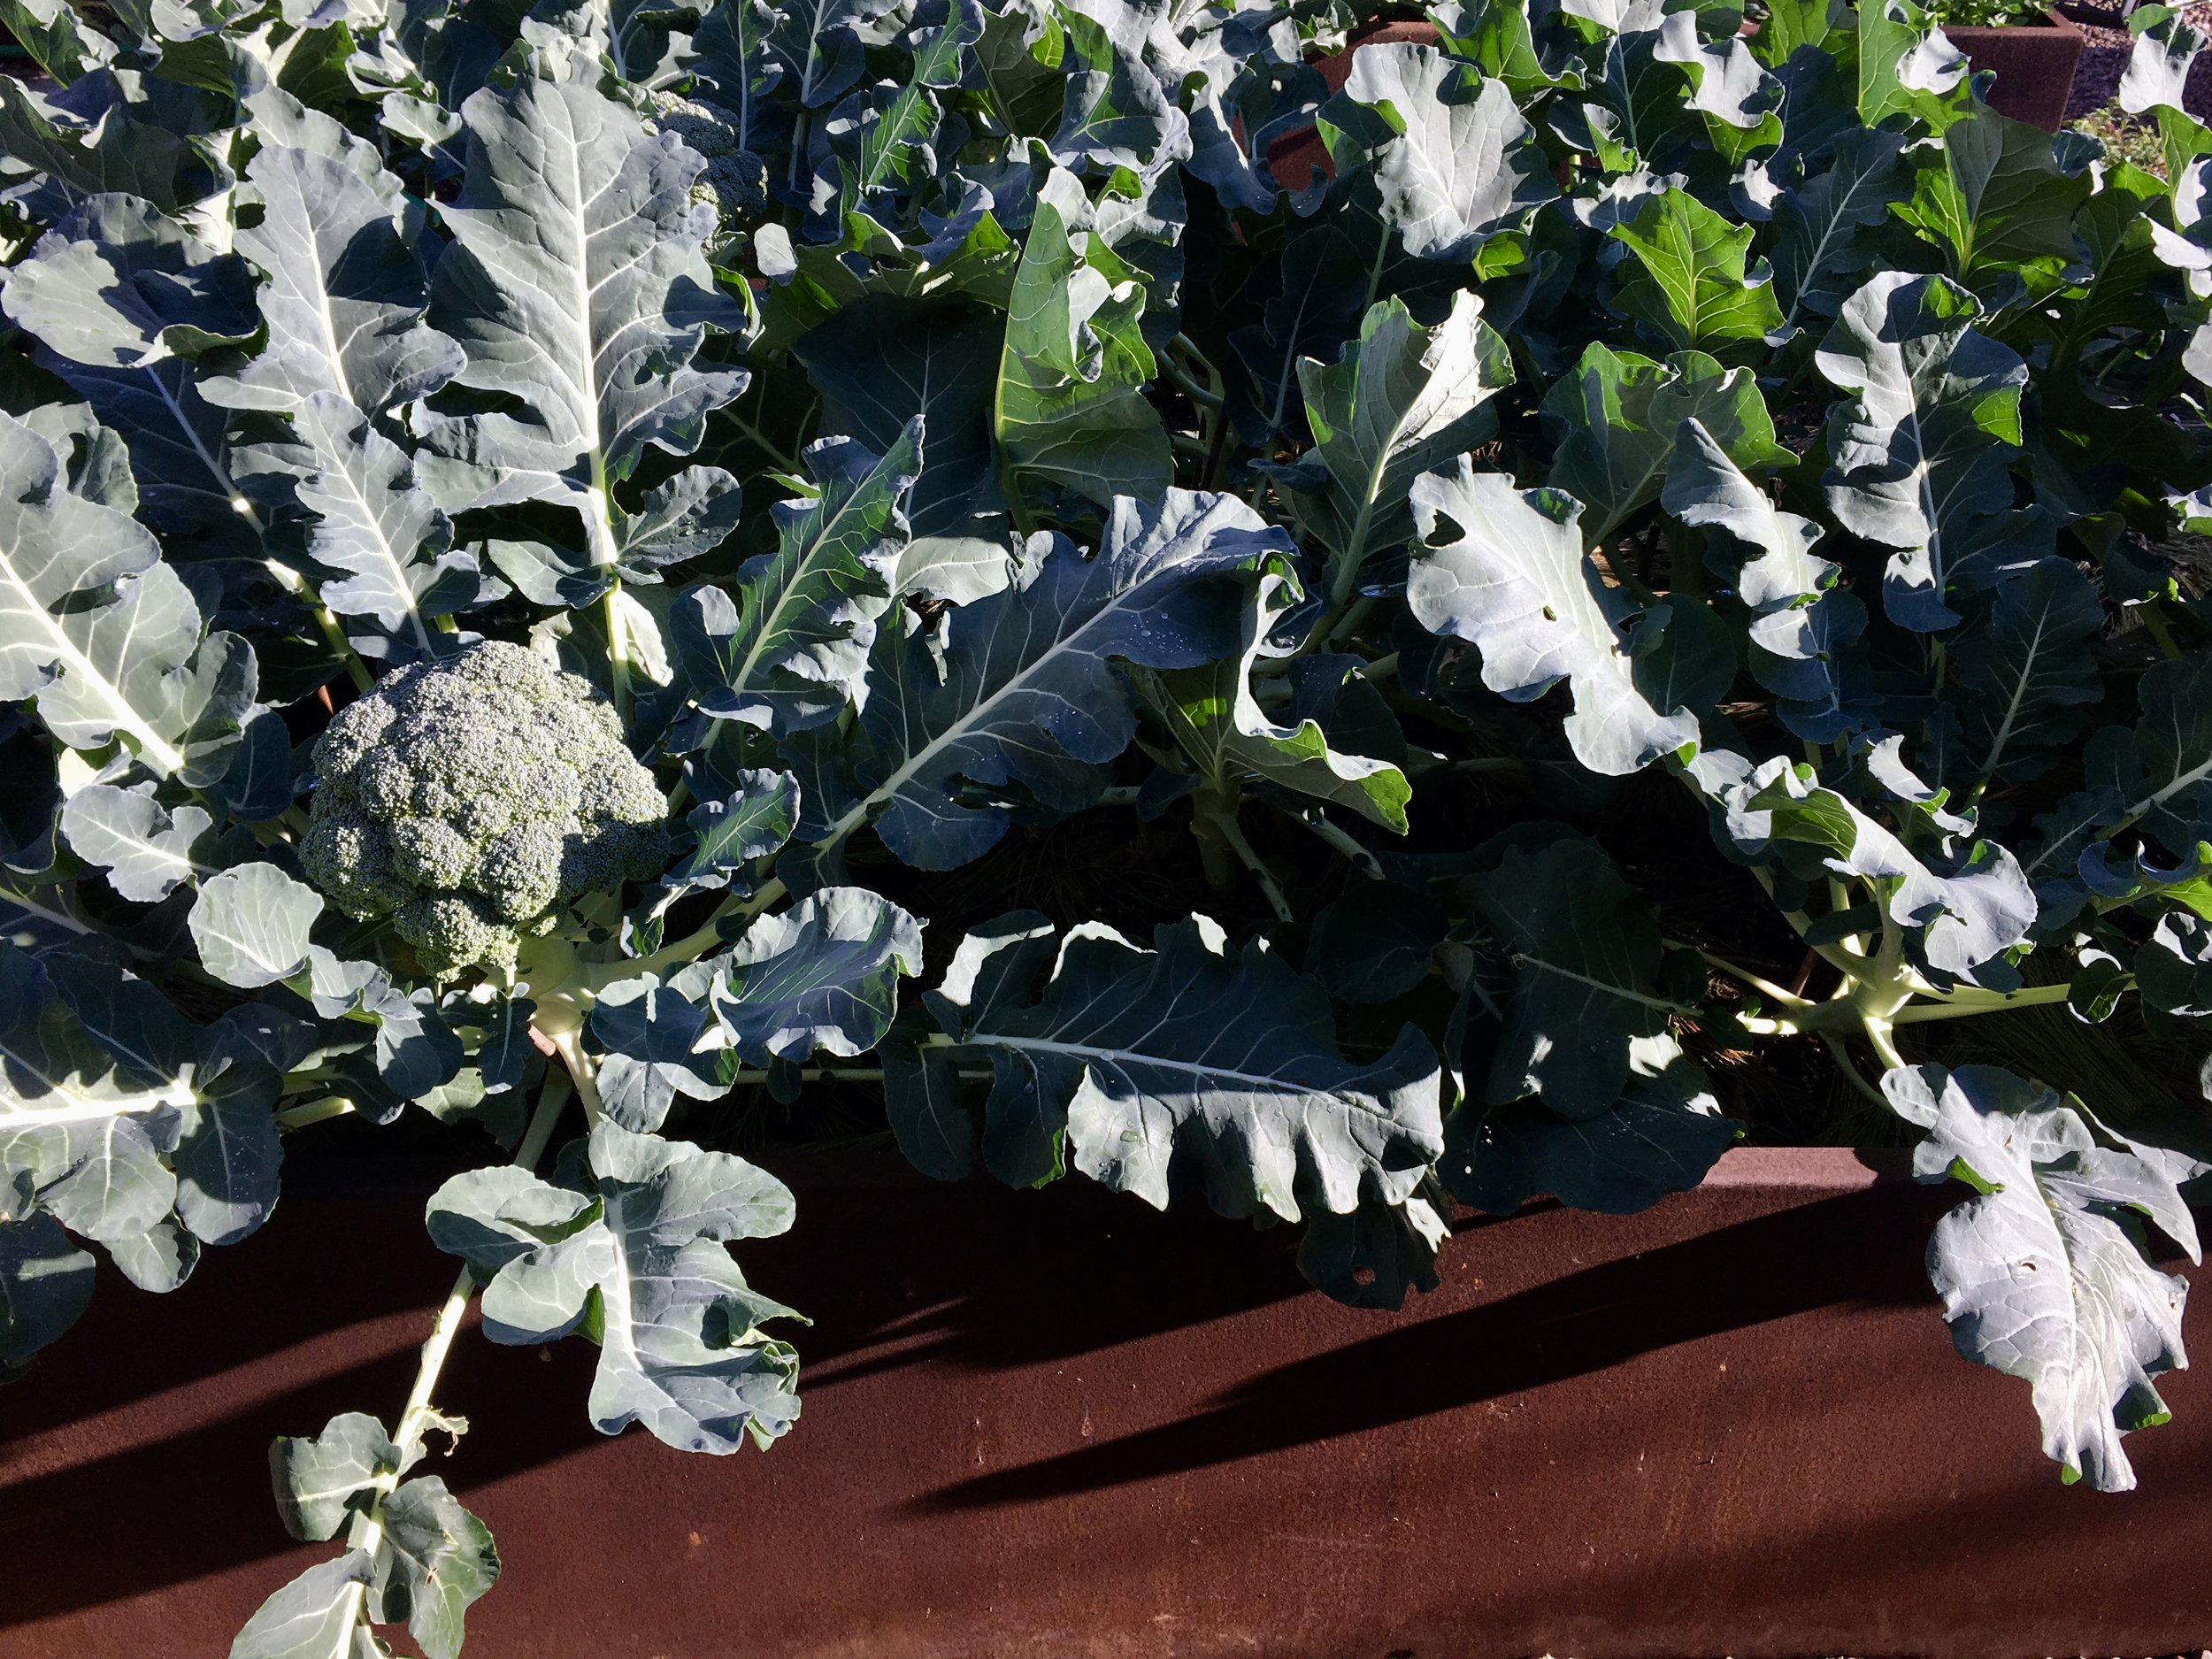 Bed 1: Twelve 'Premium Crop' broccoli plants